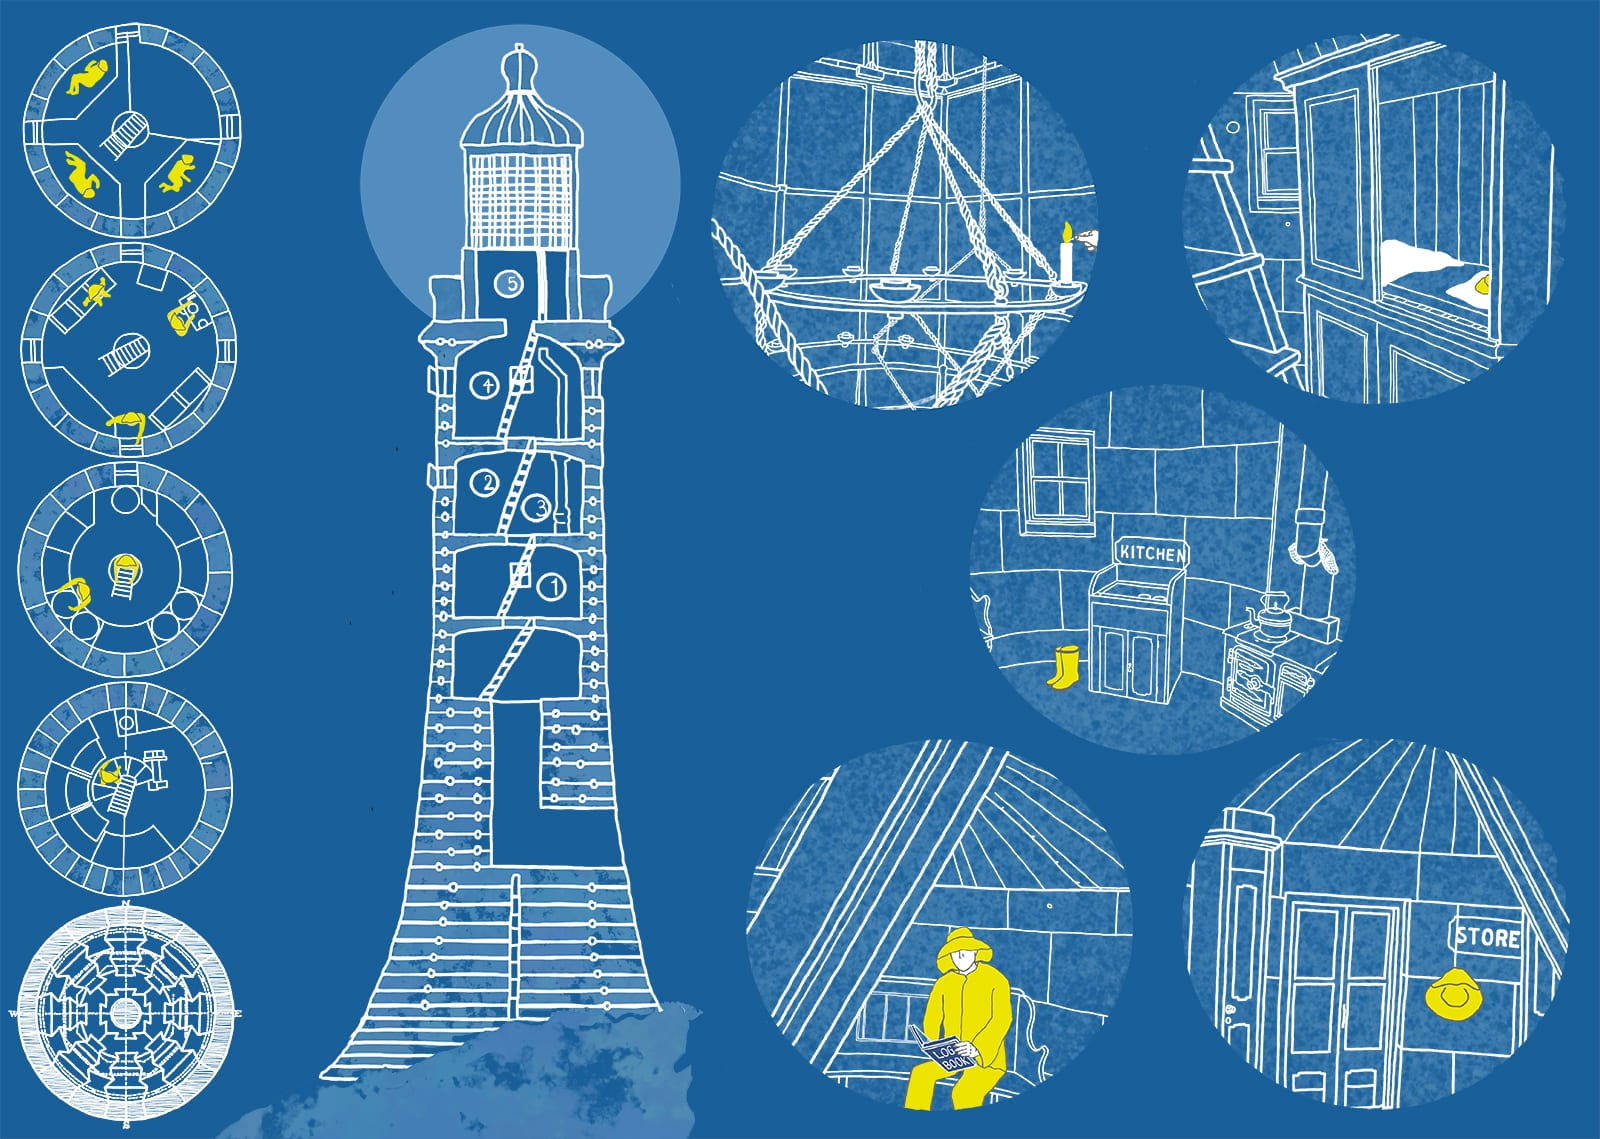 Accurate depictions of Smeaton's Tower and the daily life of the Lighthouse Keepers.